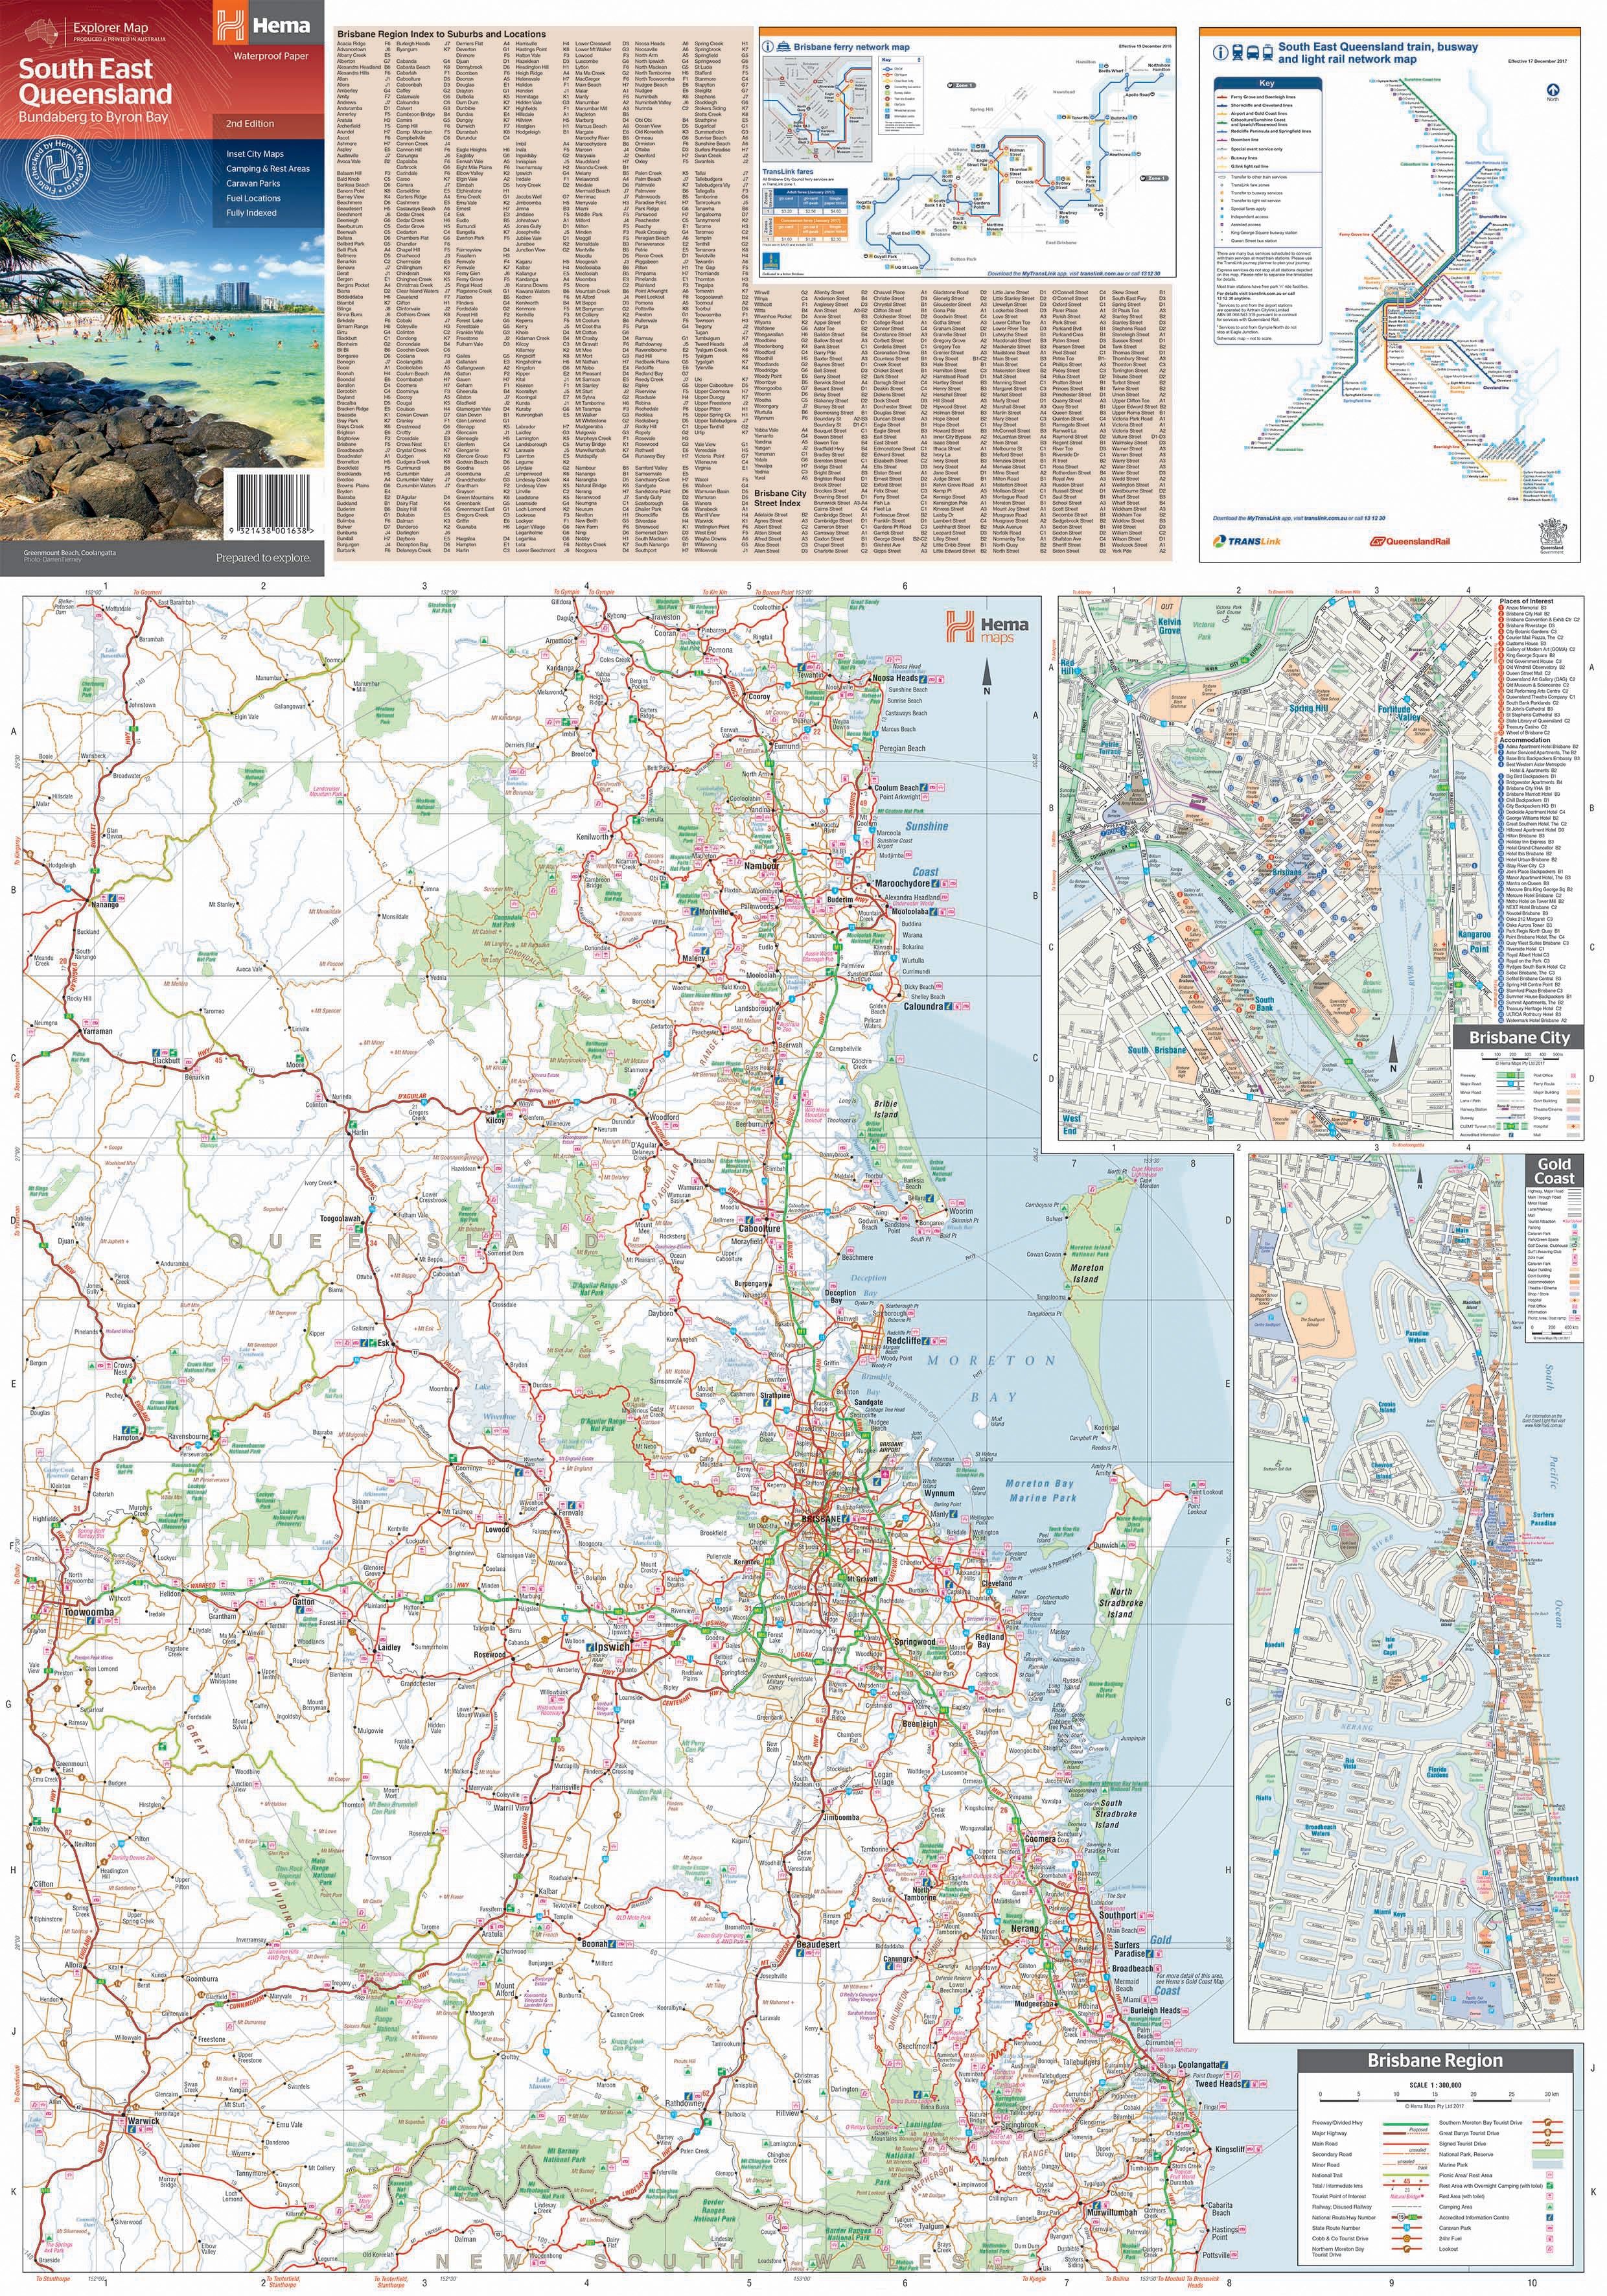 South East Queensland Map Ed2 Cover Side